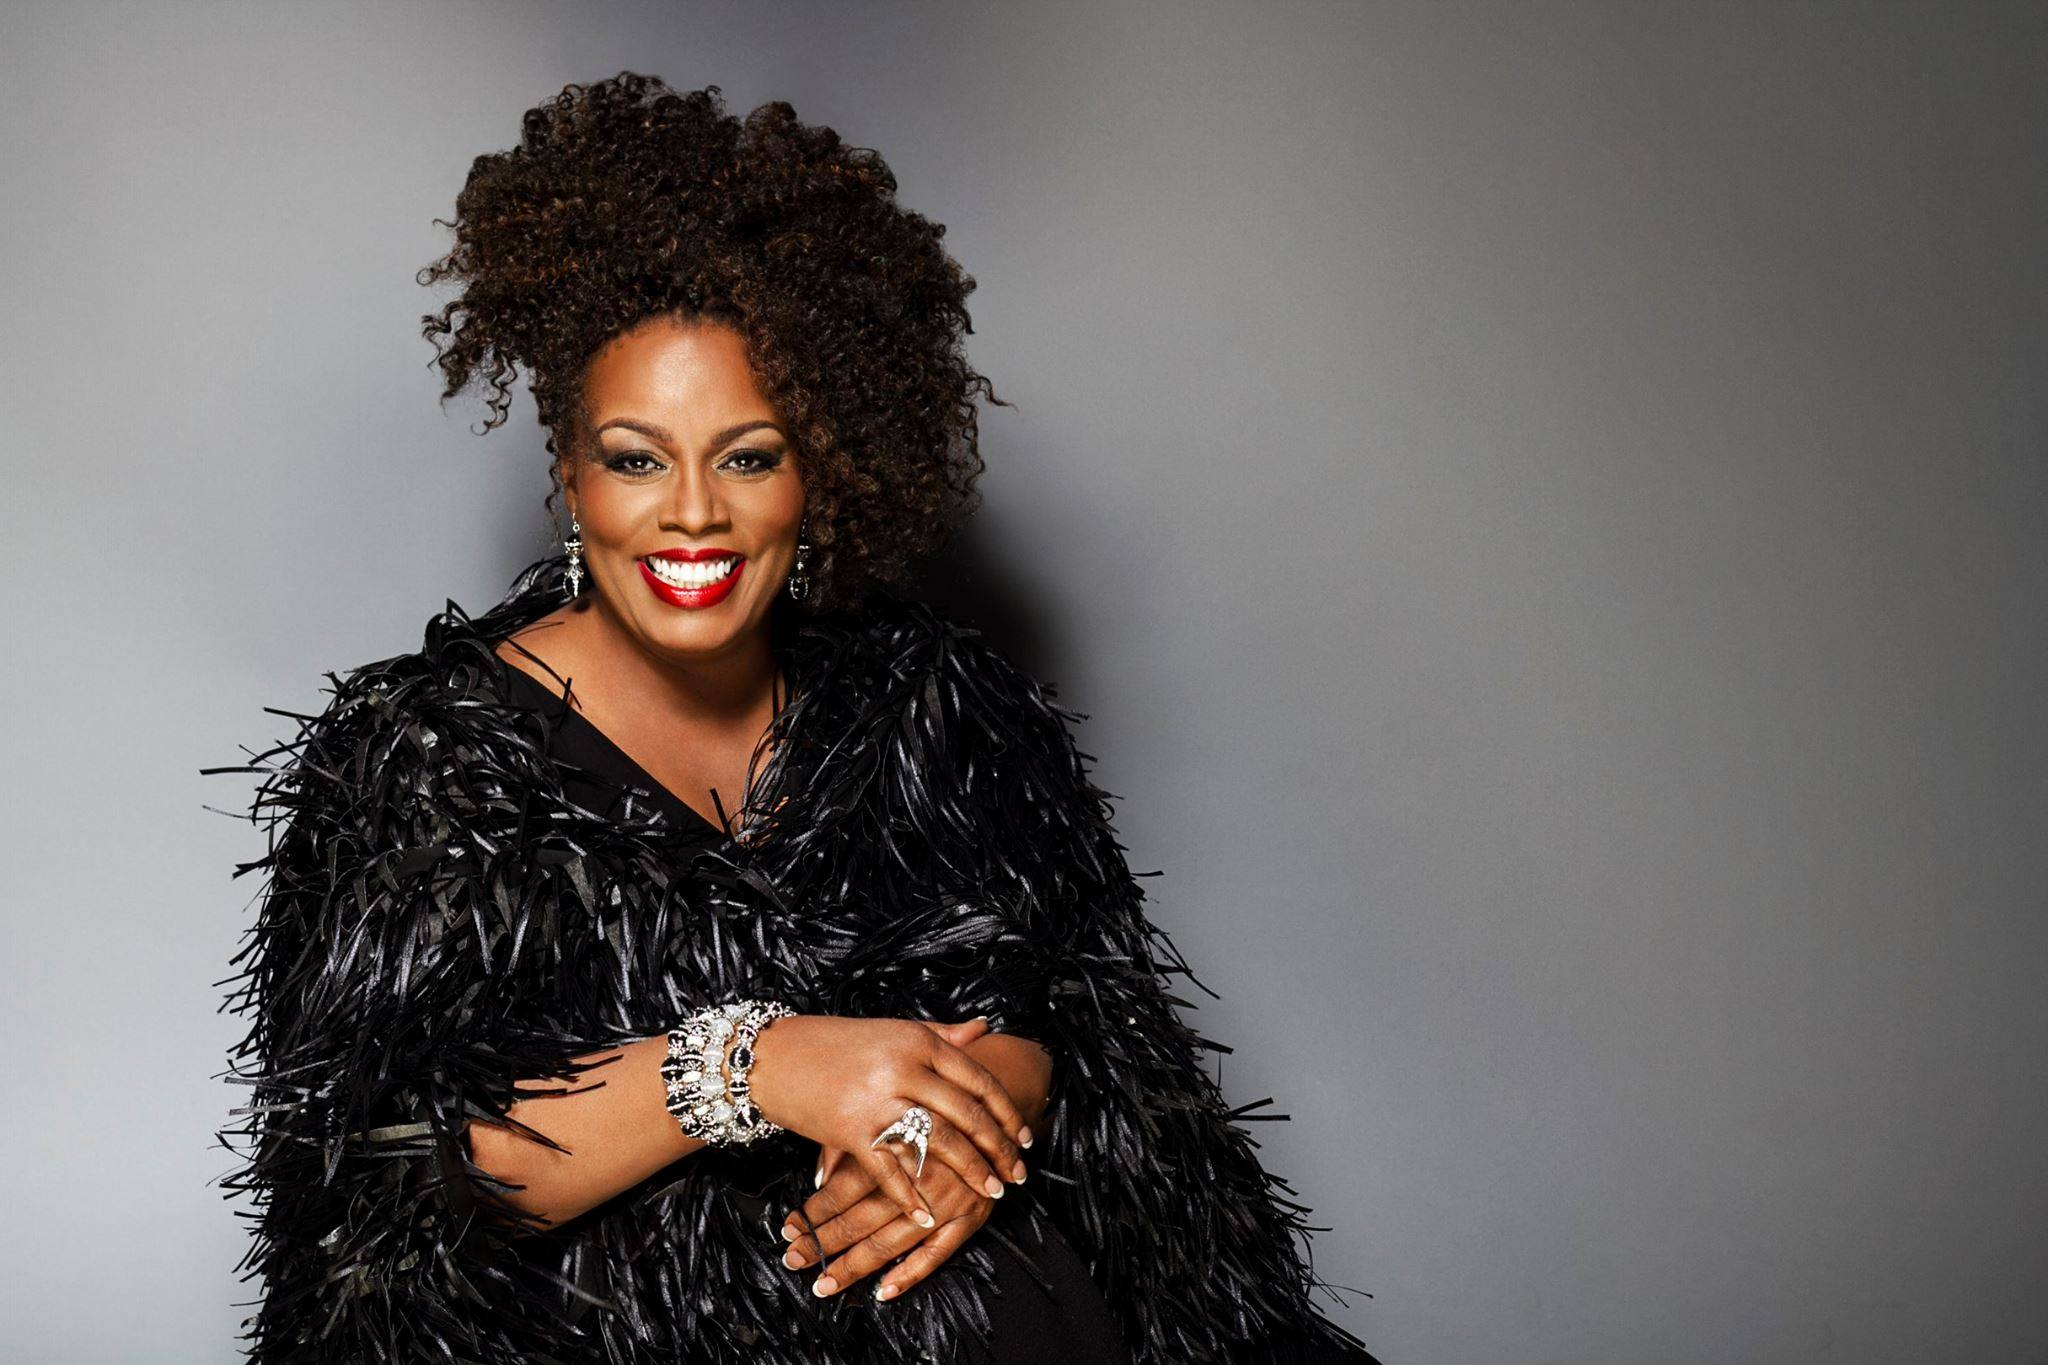 Dianne Reeves: Christmas Time Is Here at Walt Disney Concert Hall